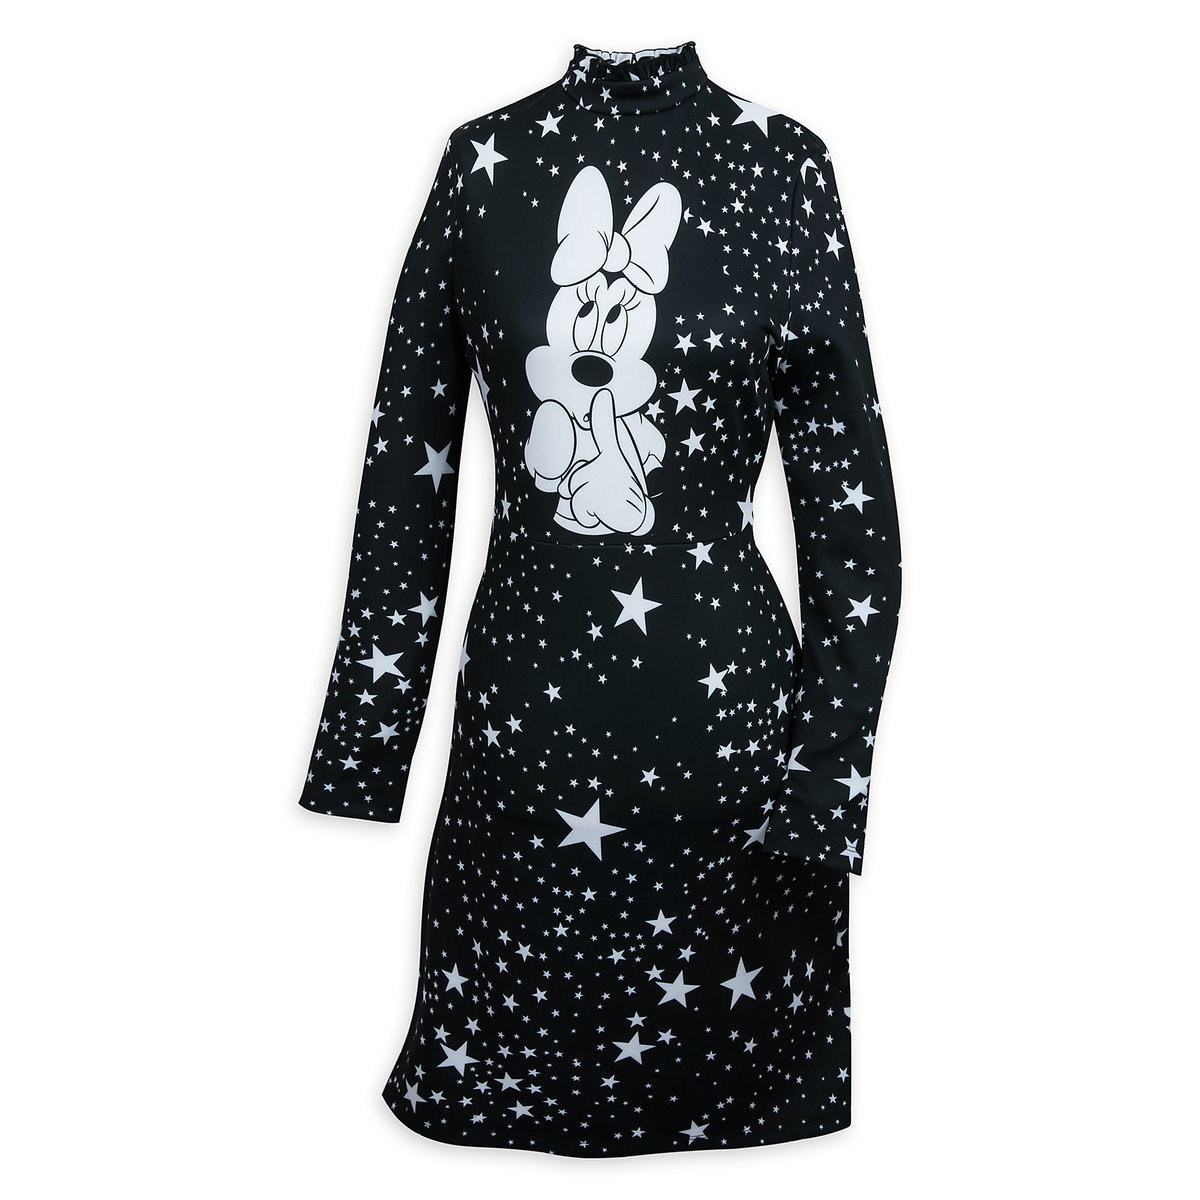 Minnie Mouse Star Dress For Women By Sugarbird Shopdisney